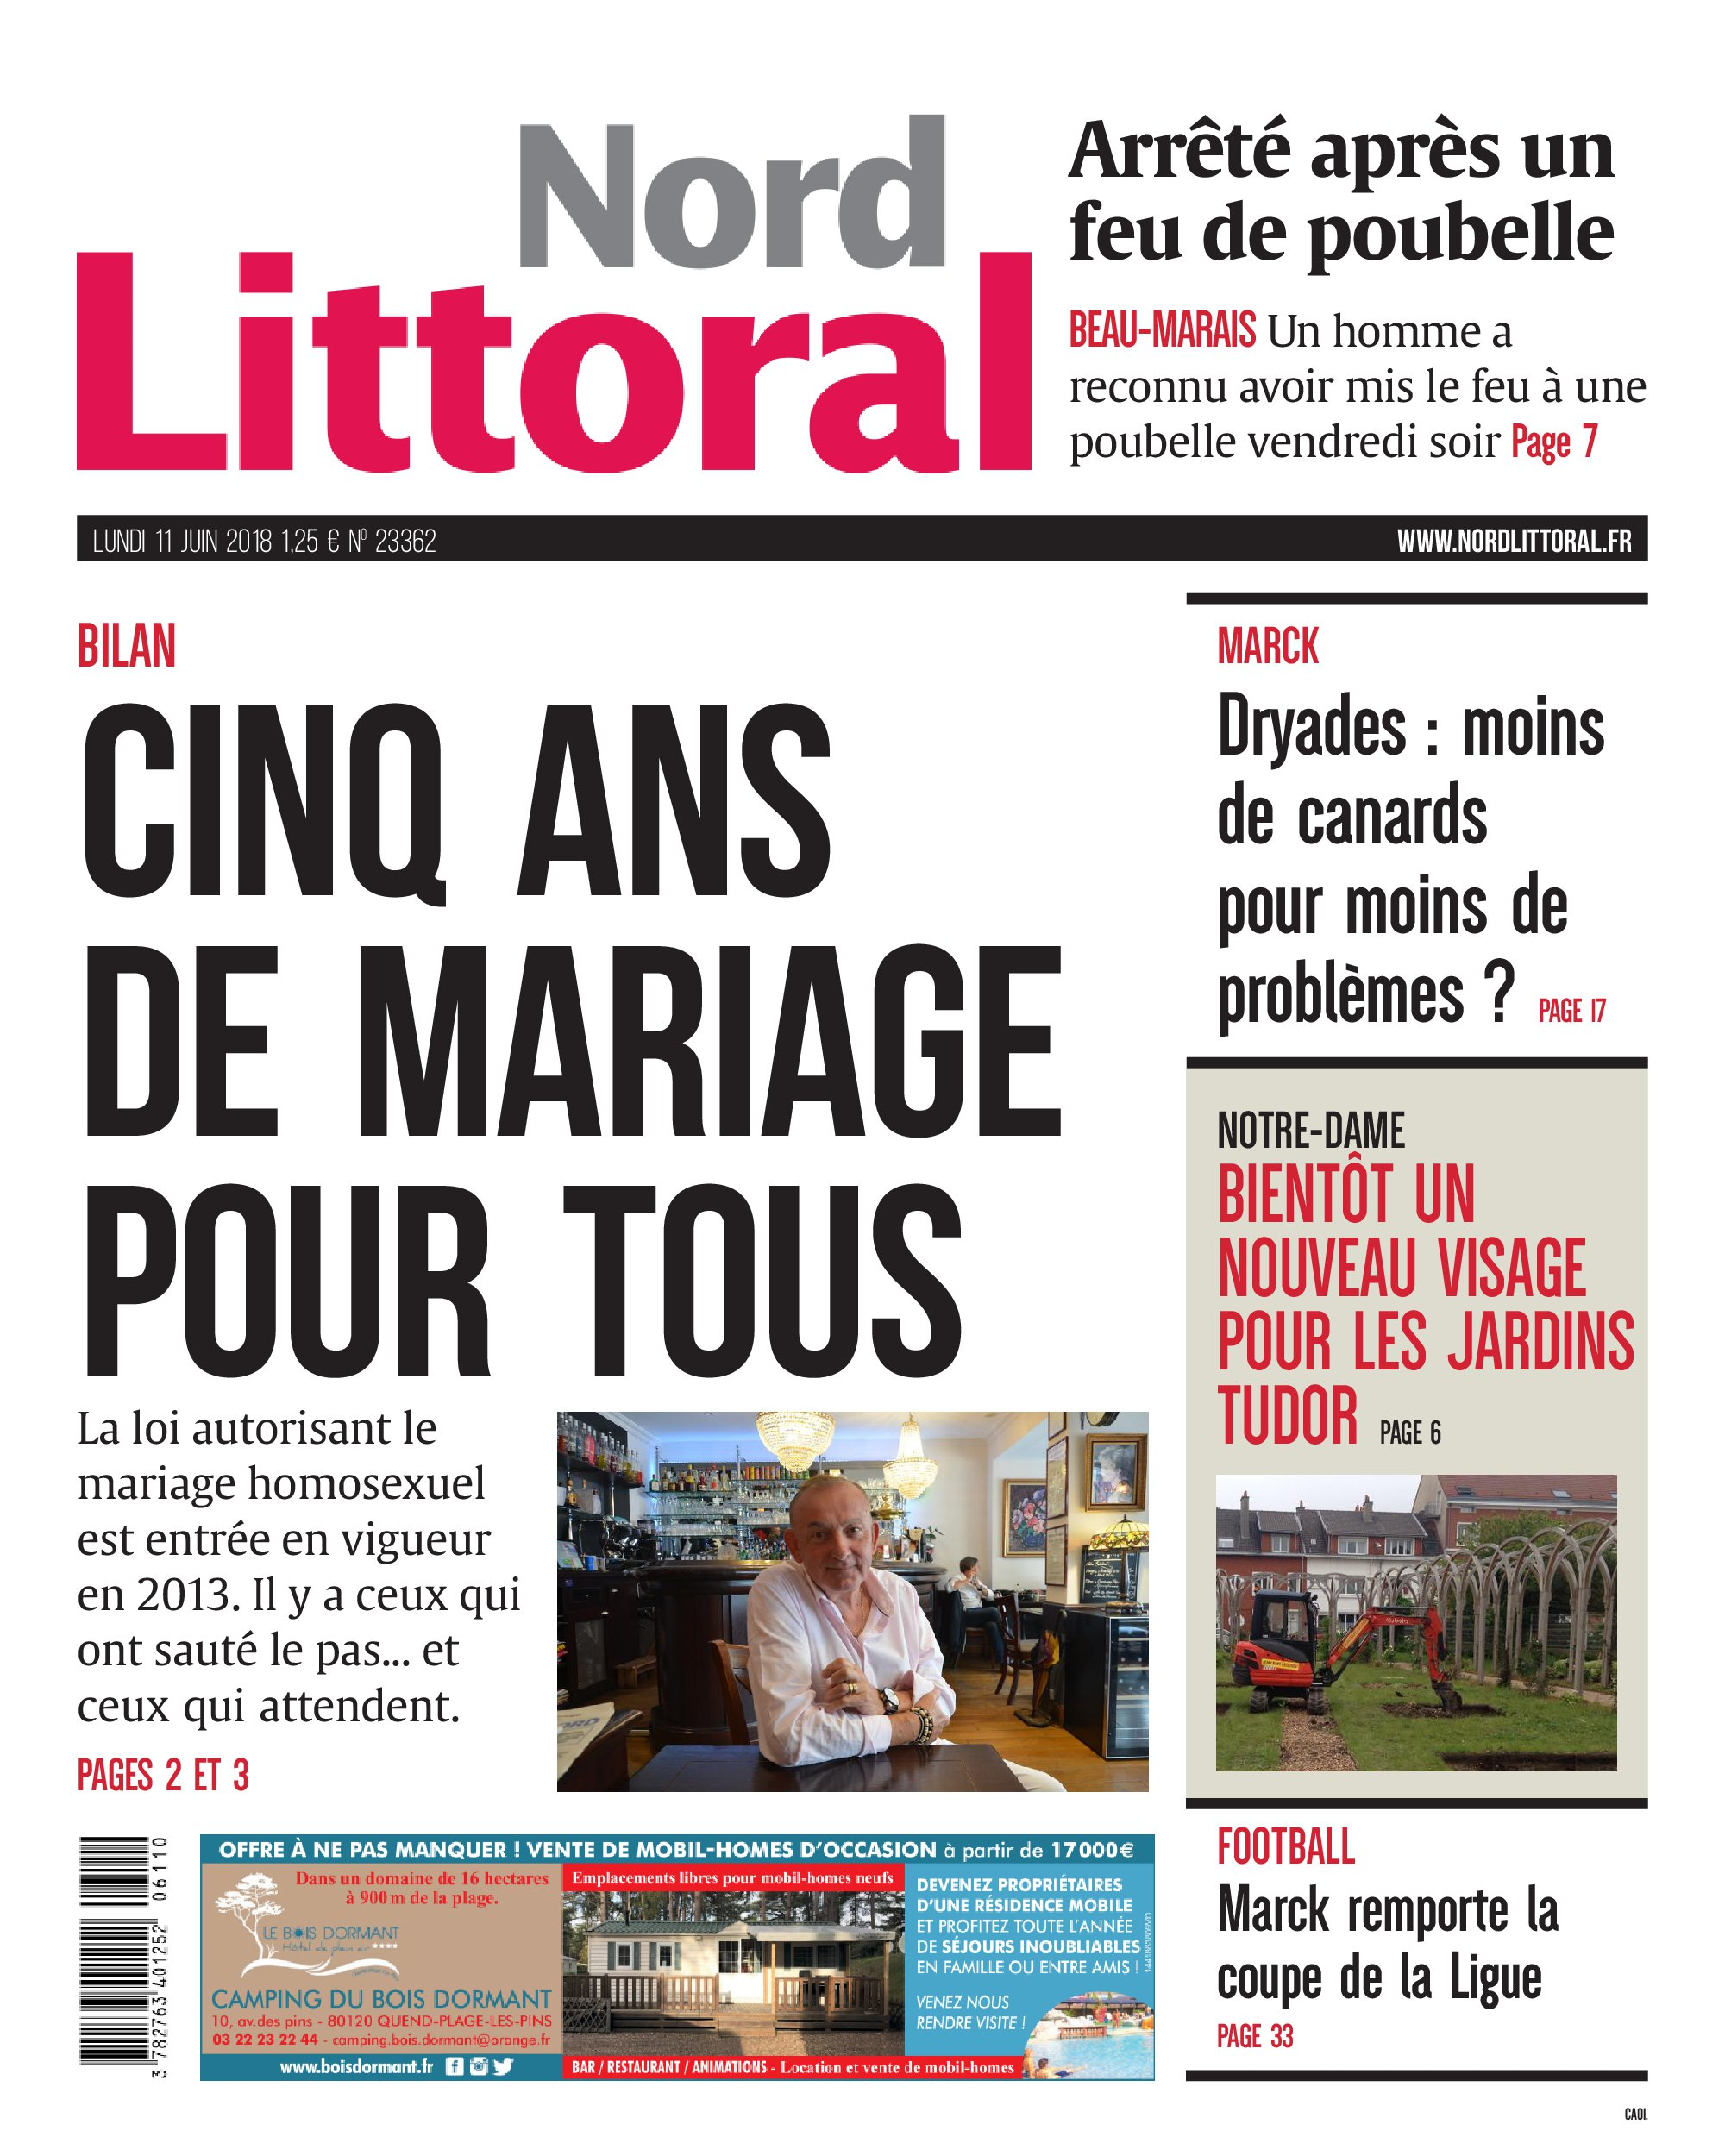 culture chinoise courtiser datant mariage trois heures règle datant